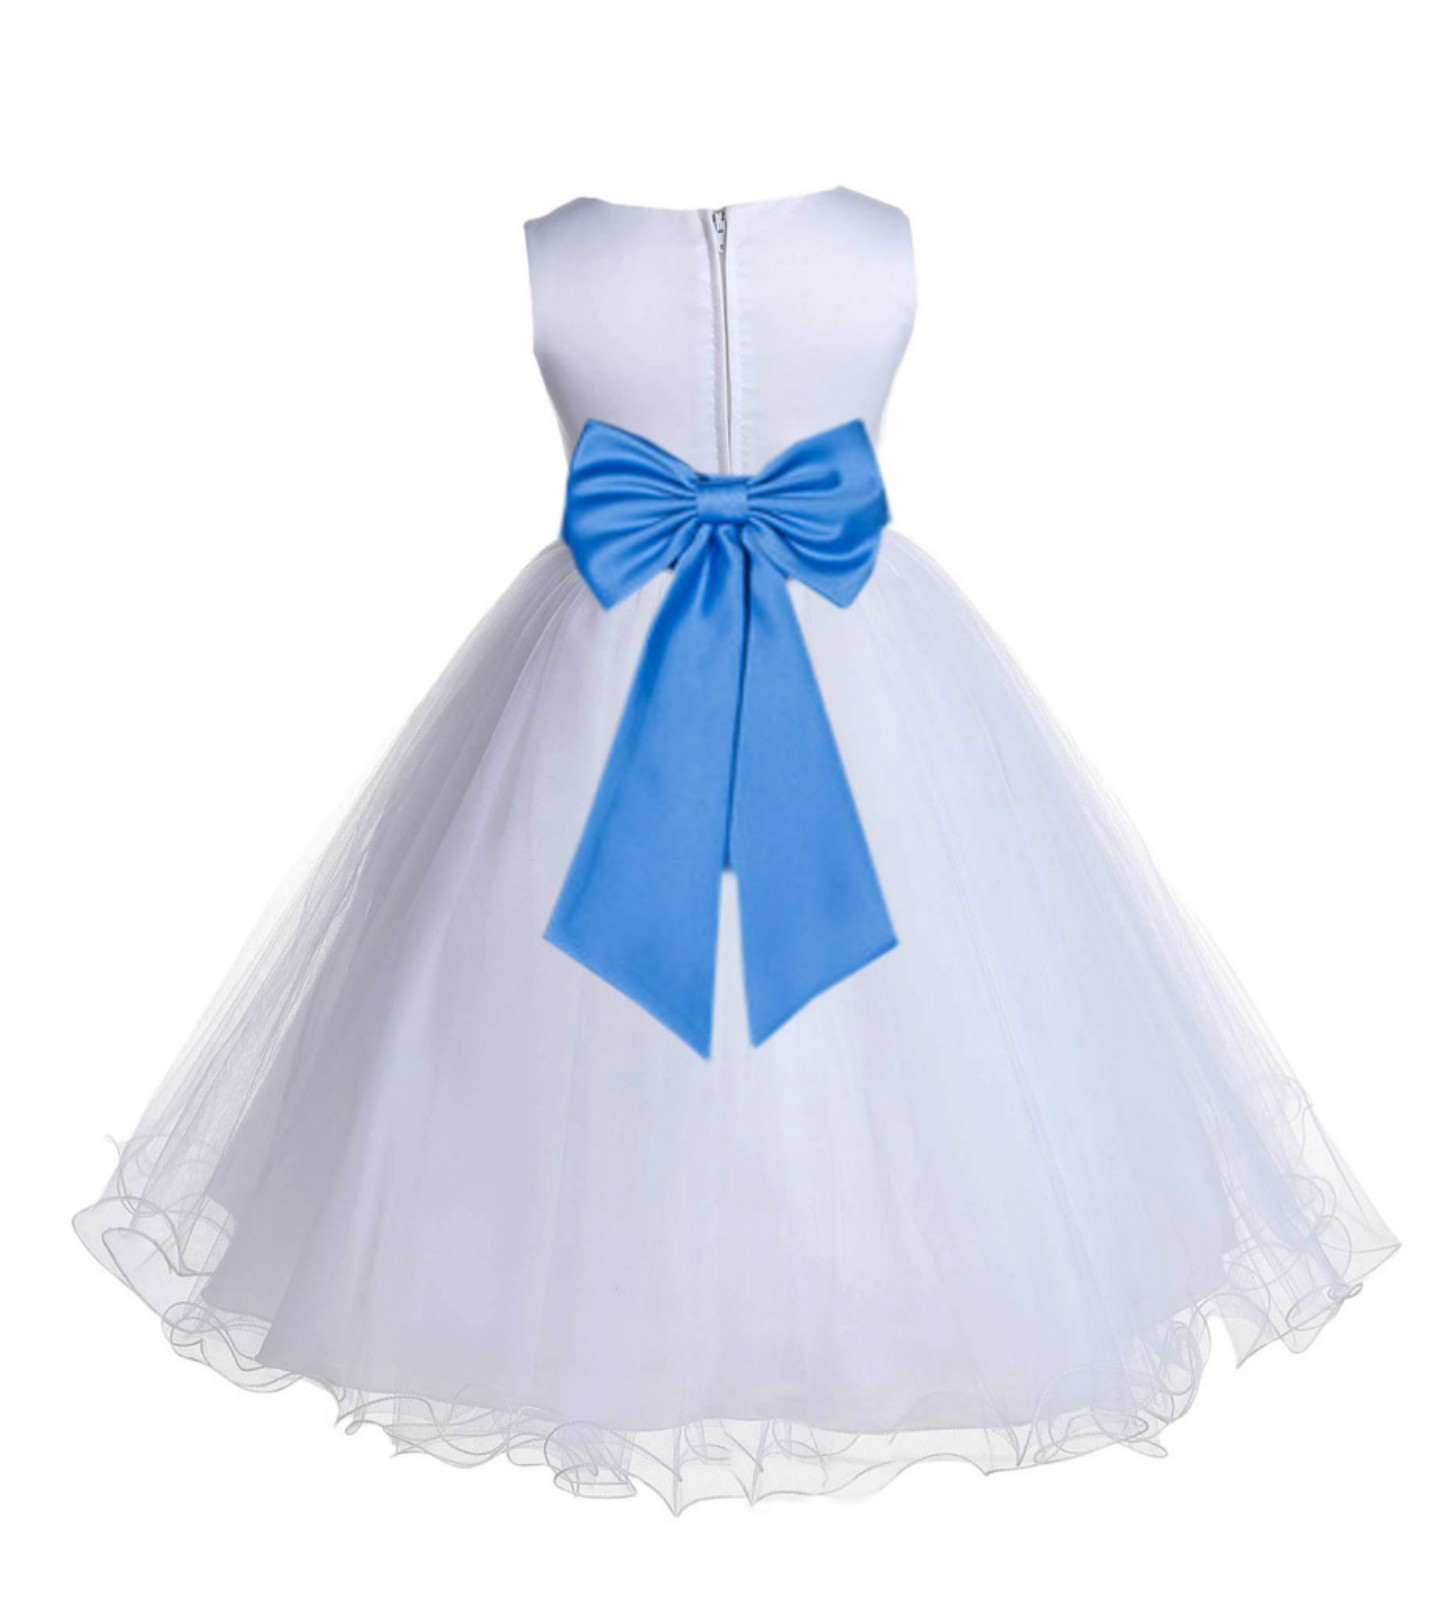 White/Cornflower Tulle Rattail Edge Flower Girl Dress Wedding Bridesmaid 829T